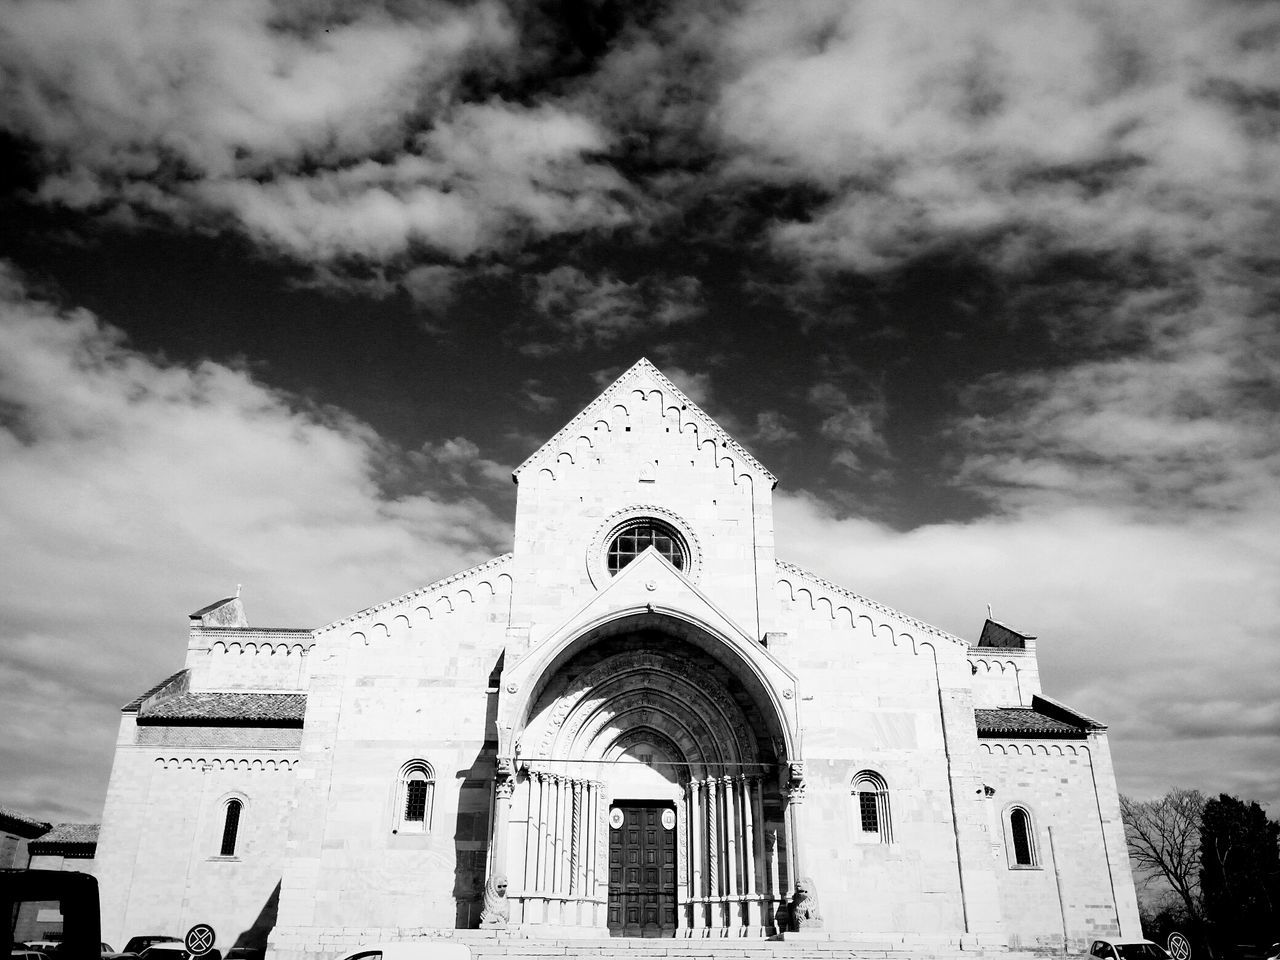 Sky History Architecture Cloud - Sky No People Outdoors Day Duomo Duomo Di Ancona Italy🇮🇹 Blackandwhite Blackandwhite Photography Photography Ancona Clouds And Sky Beautiful Day